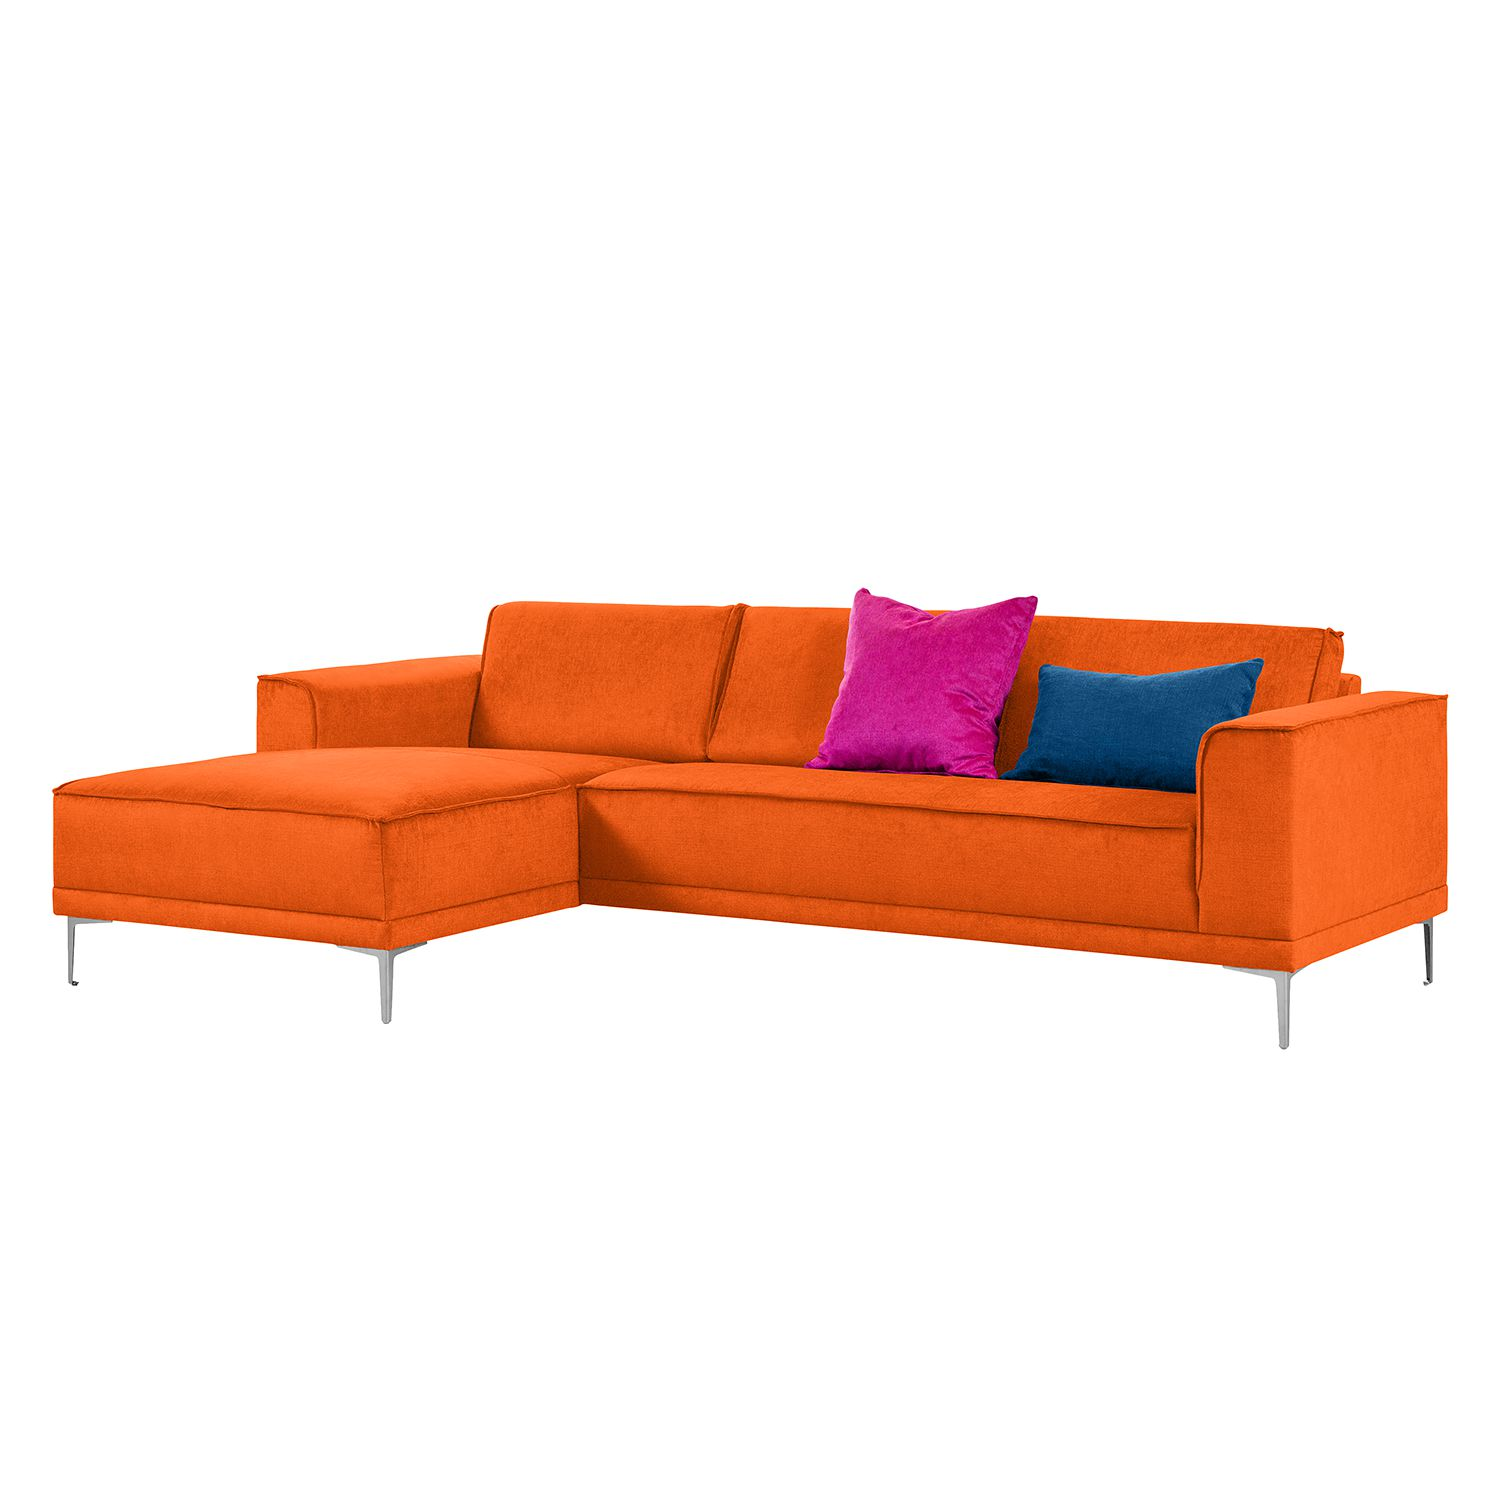 Ecksofa Grapefield - Webstoff - Longchair/Ottomane davorstehend links - Orange, Says Who